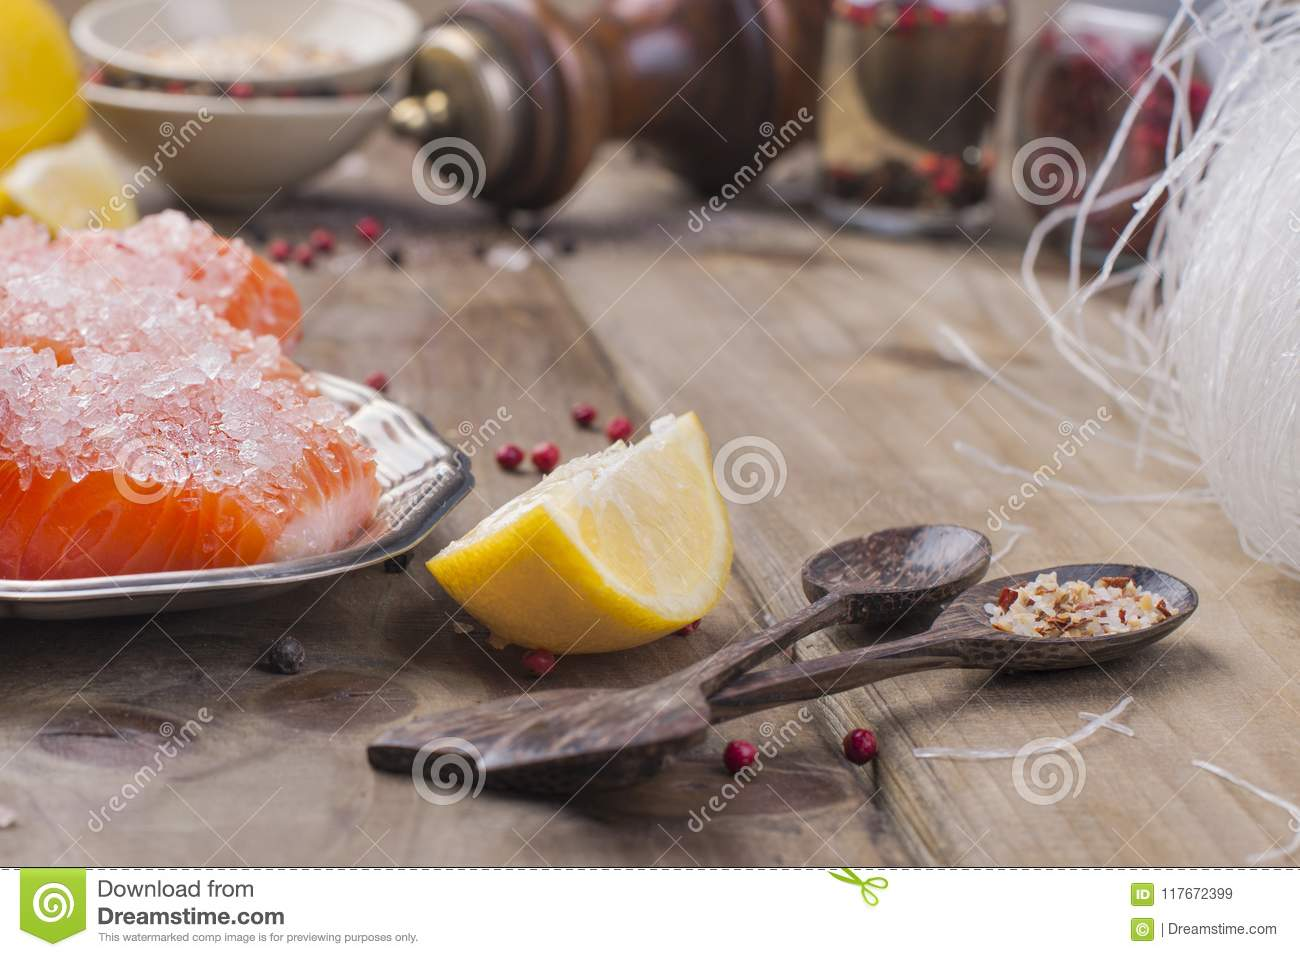 Thai food, ingredients. Rice noodles and salmon, lemon and spices. Dietary food. Stil wabi sabi. Healthy food. Wooden background.